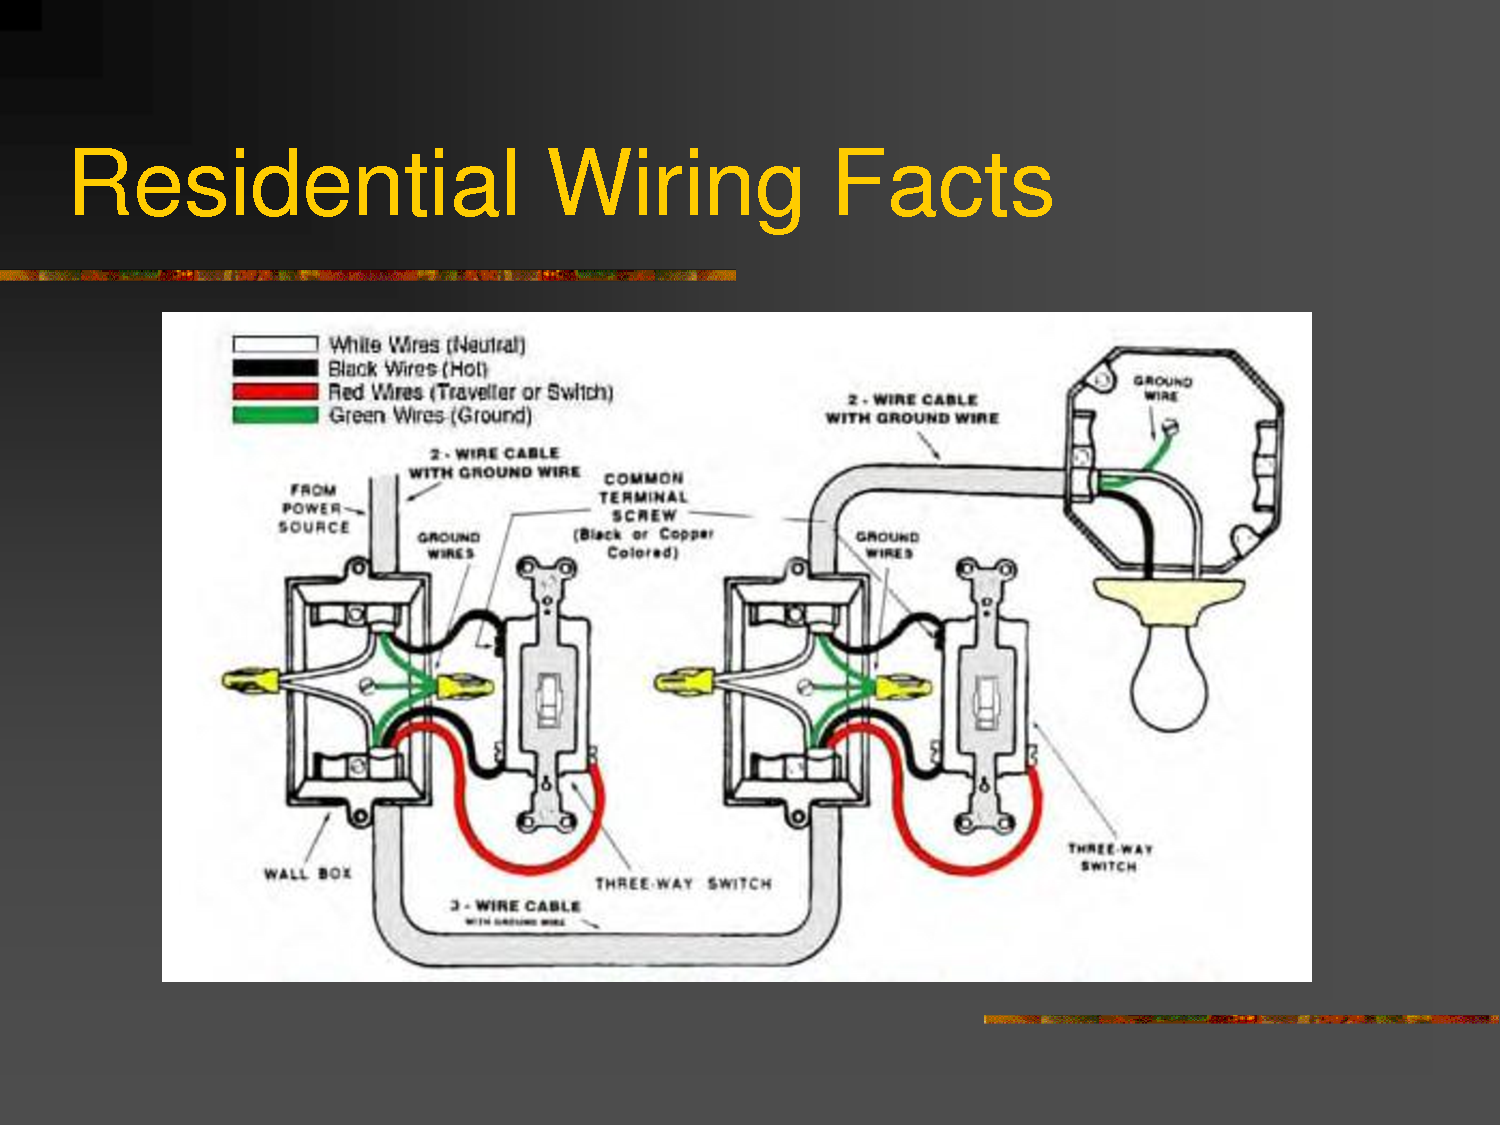 4 best images of residential wiring diagrams house electrical rh pinterest com Residential Electrical Wiring Codes Residential Wiring Schematics